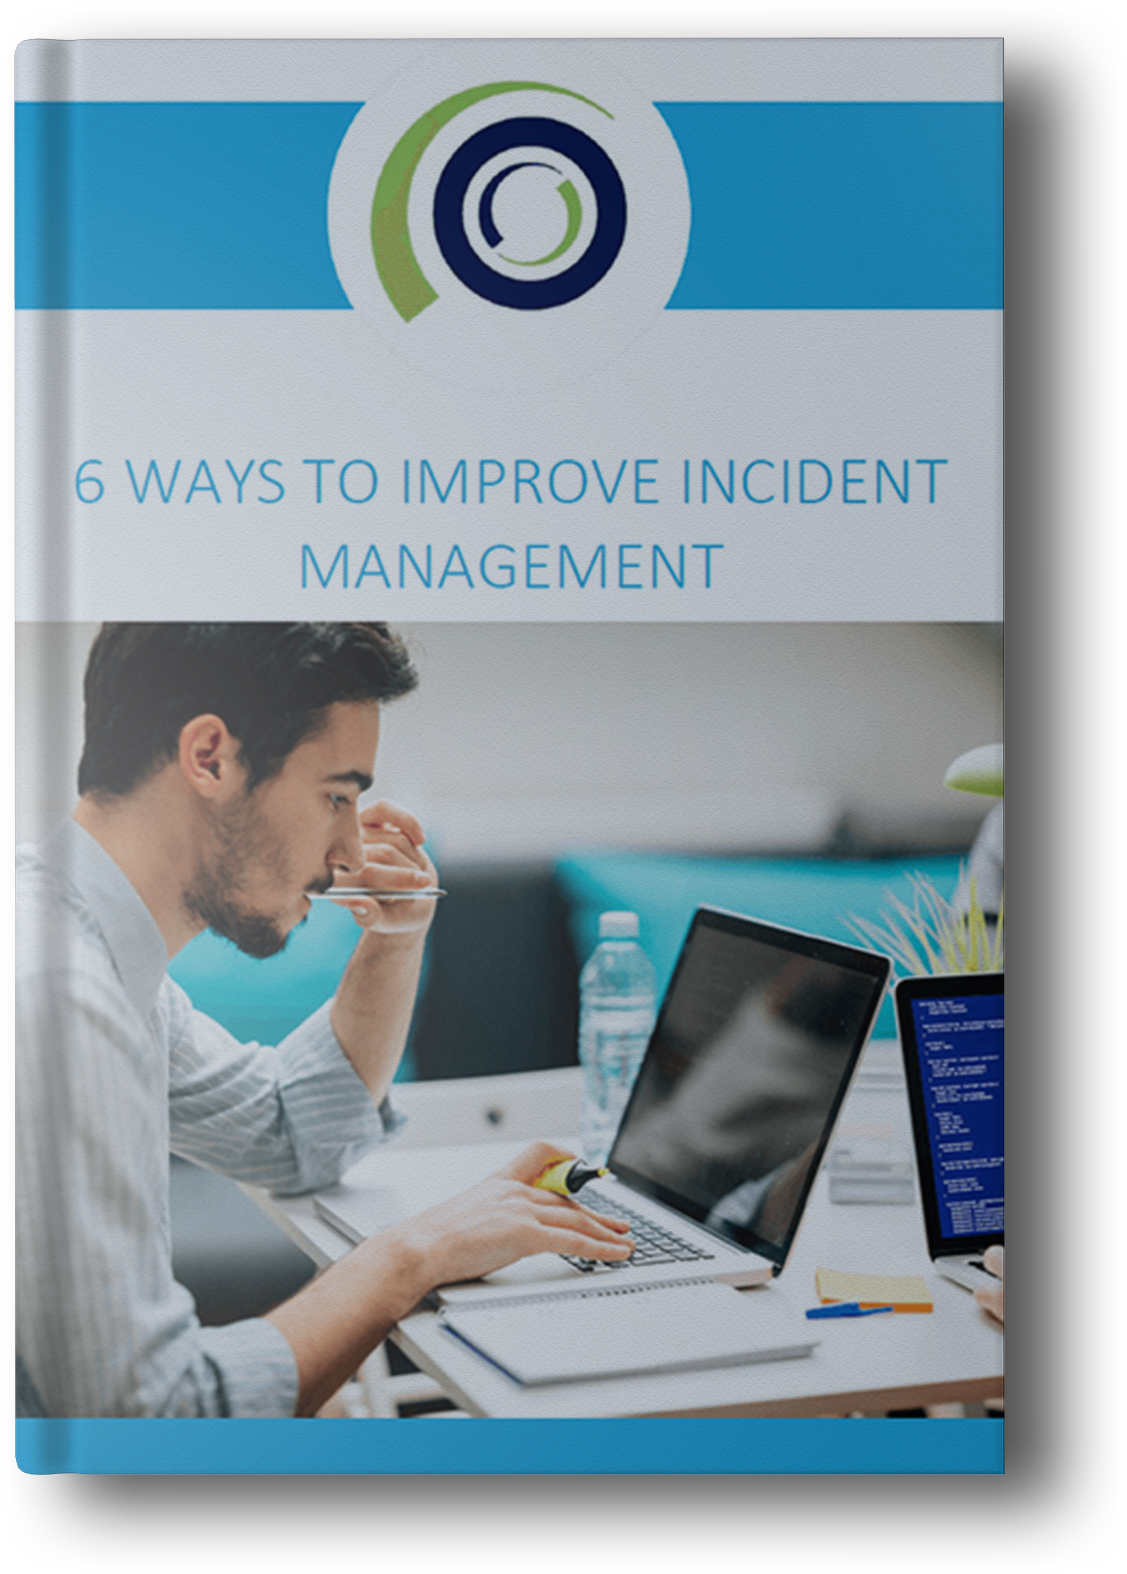 improve incident management